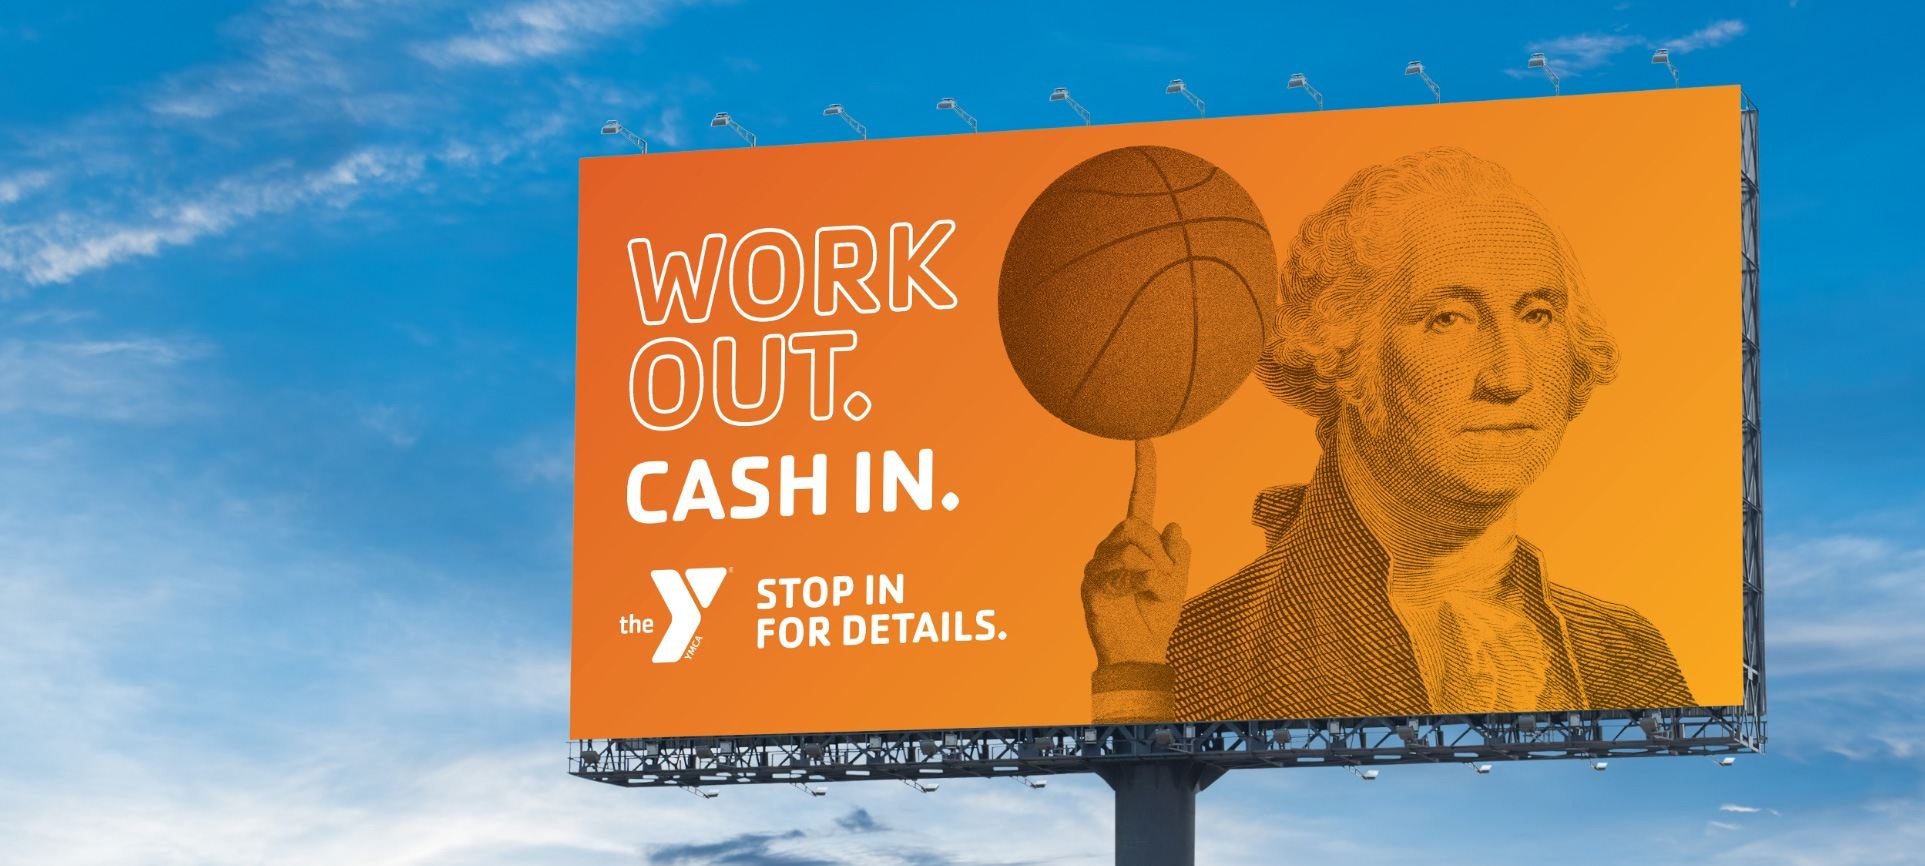 Work Out Cash In Billboard